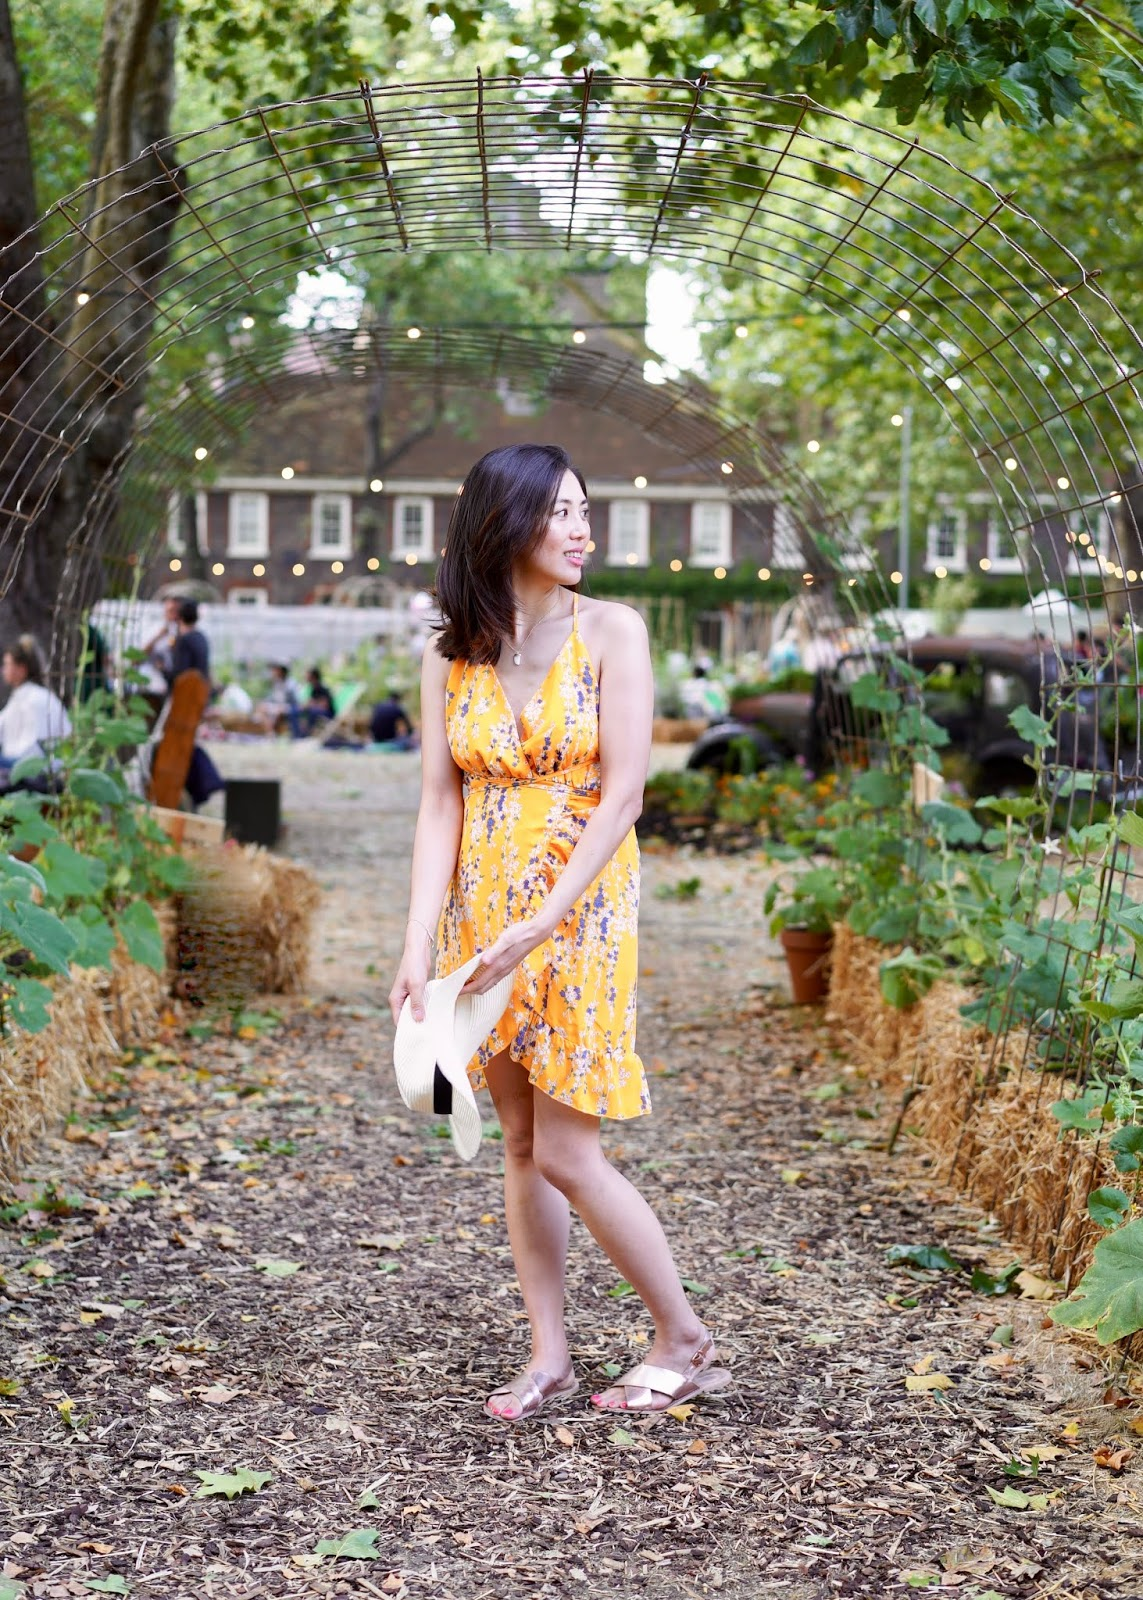 Bourne & Hollingsworth Beautiful Allotment Summe pop up Hoxton